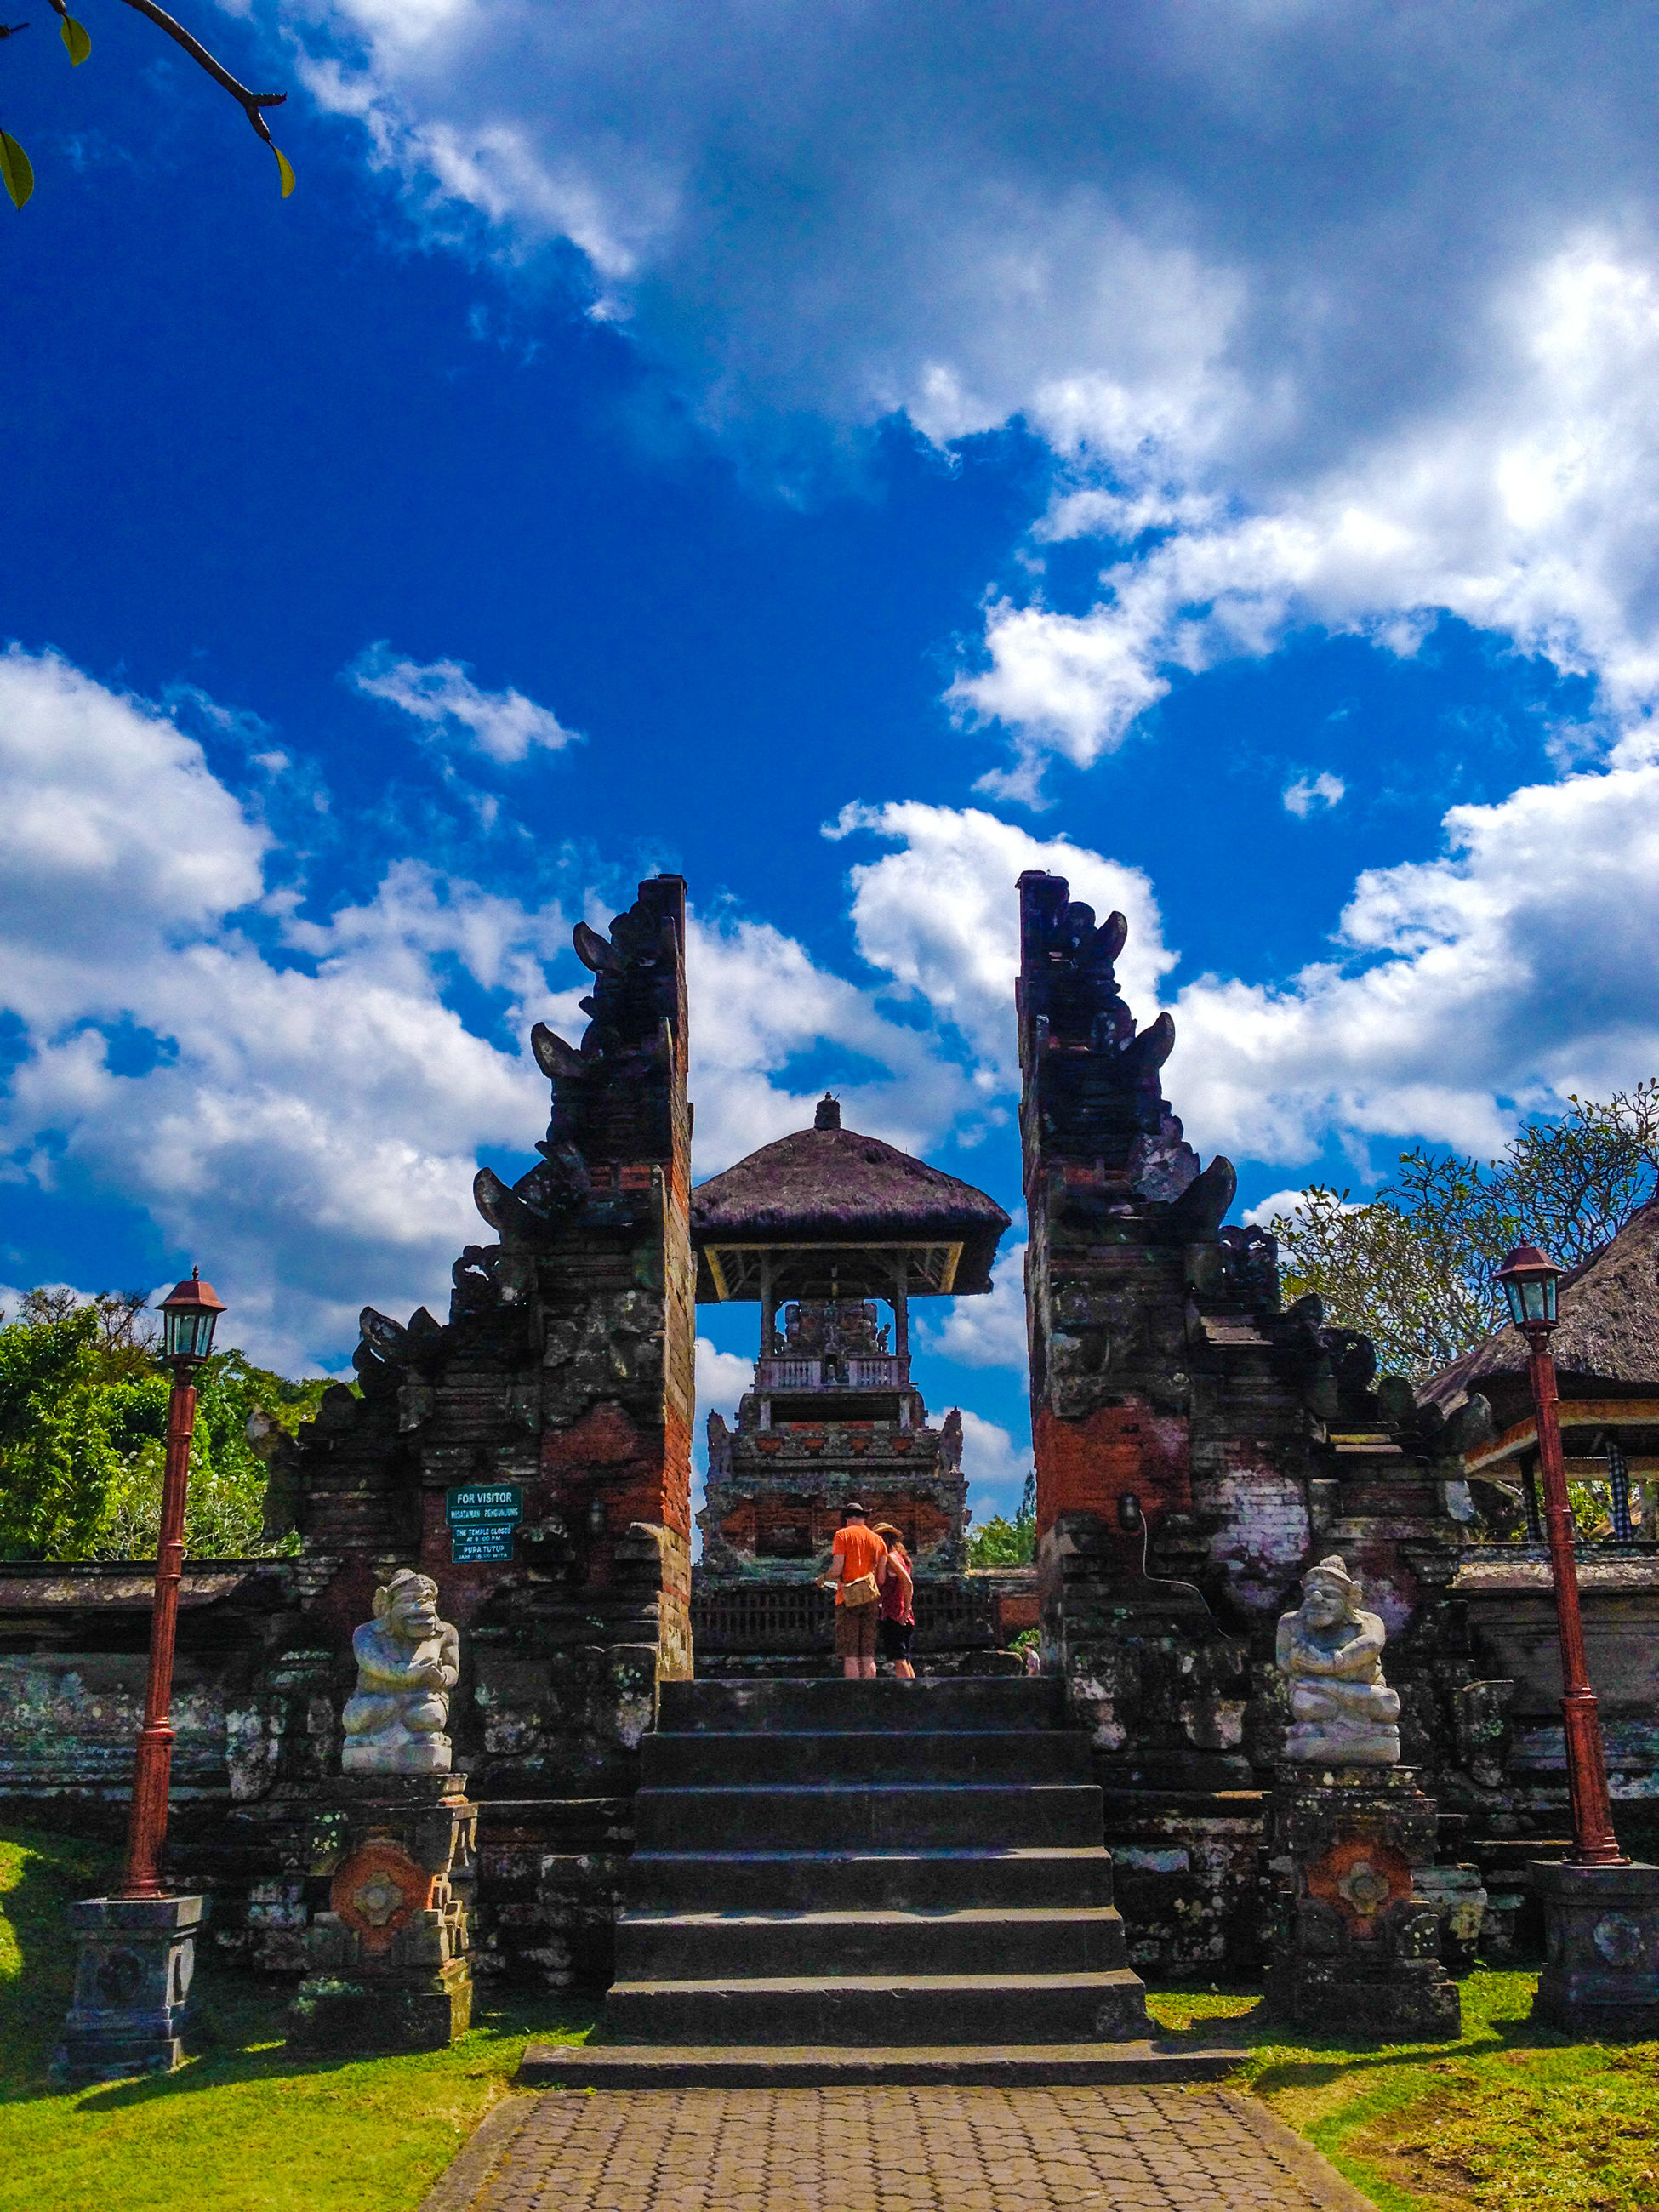 architecture, built structure, sky, building exterior, low angle view, place of worship, religion, cloud - sky, spirituality, steps, temple - building, tree, cloud, history, blue, outdoors, entrance, steps and staircases